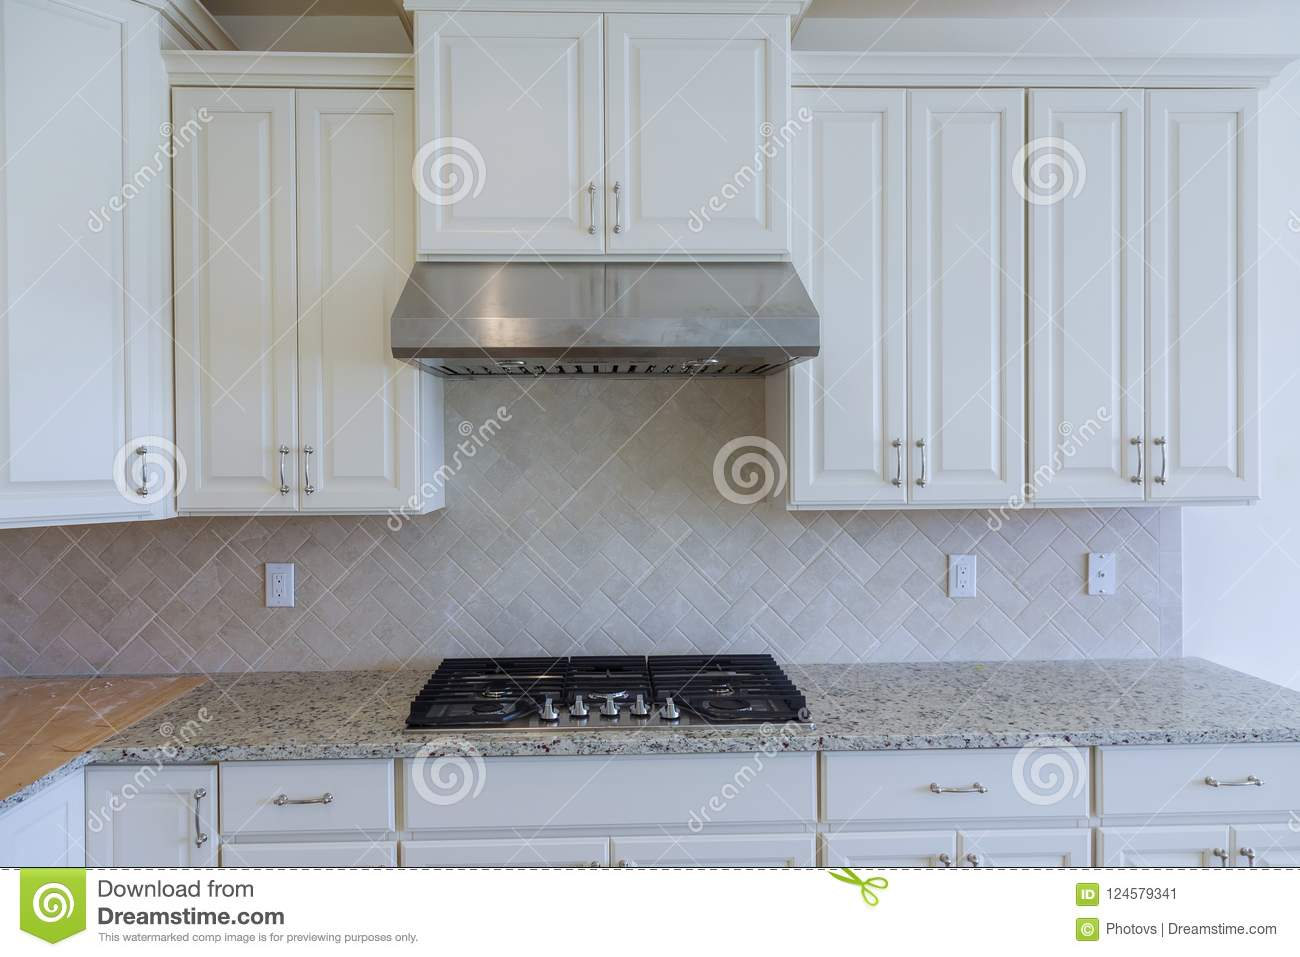 Empty Tiled Kitchen With Dish Stainless Steel Appliances Stock Image ...